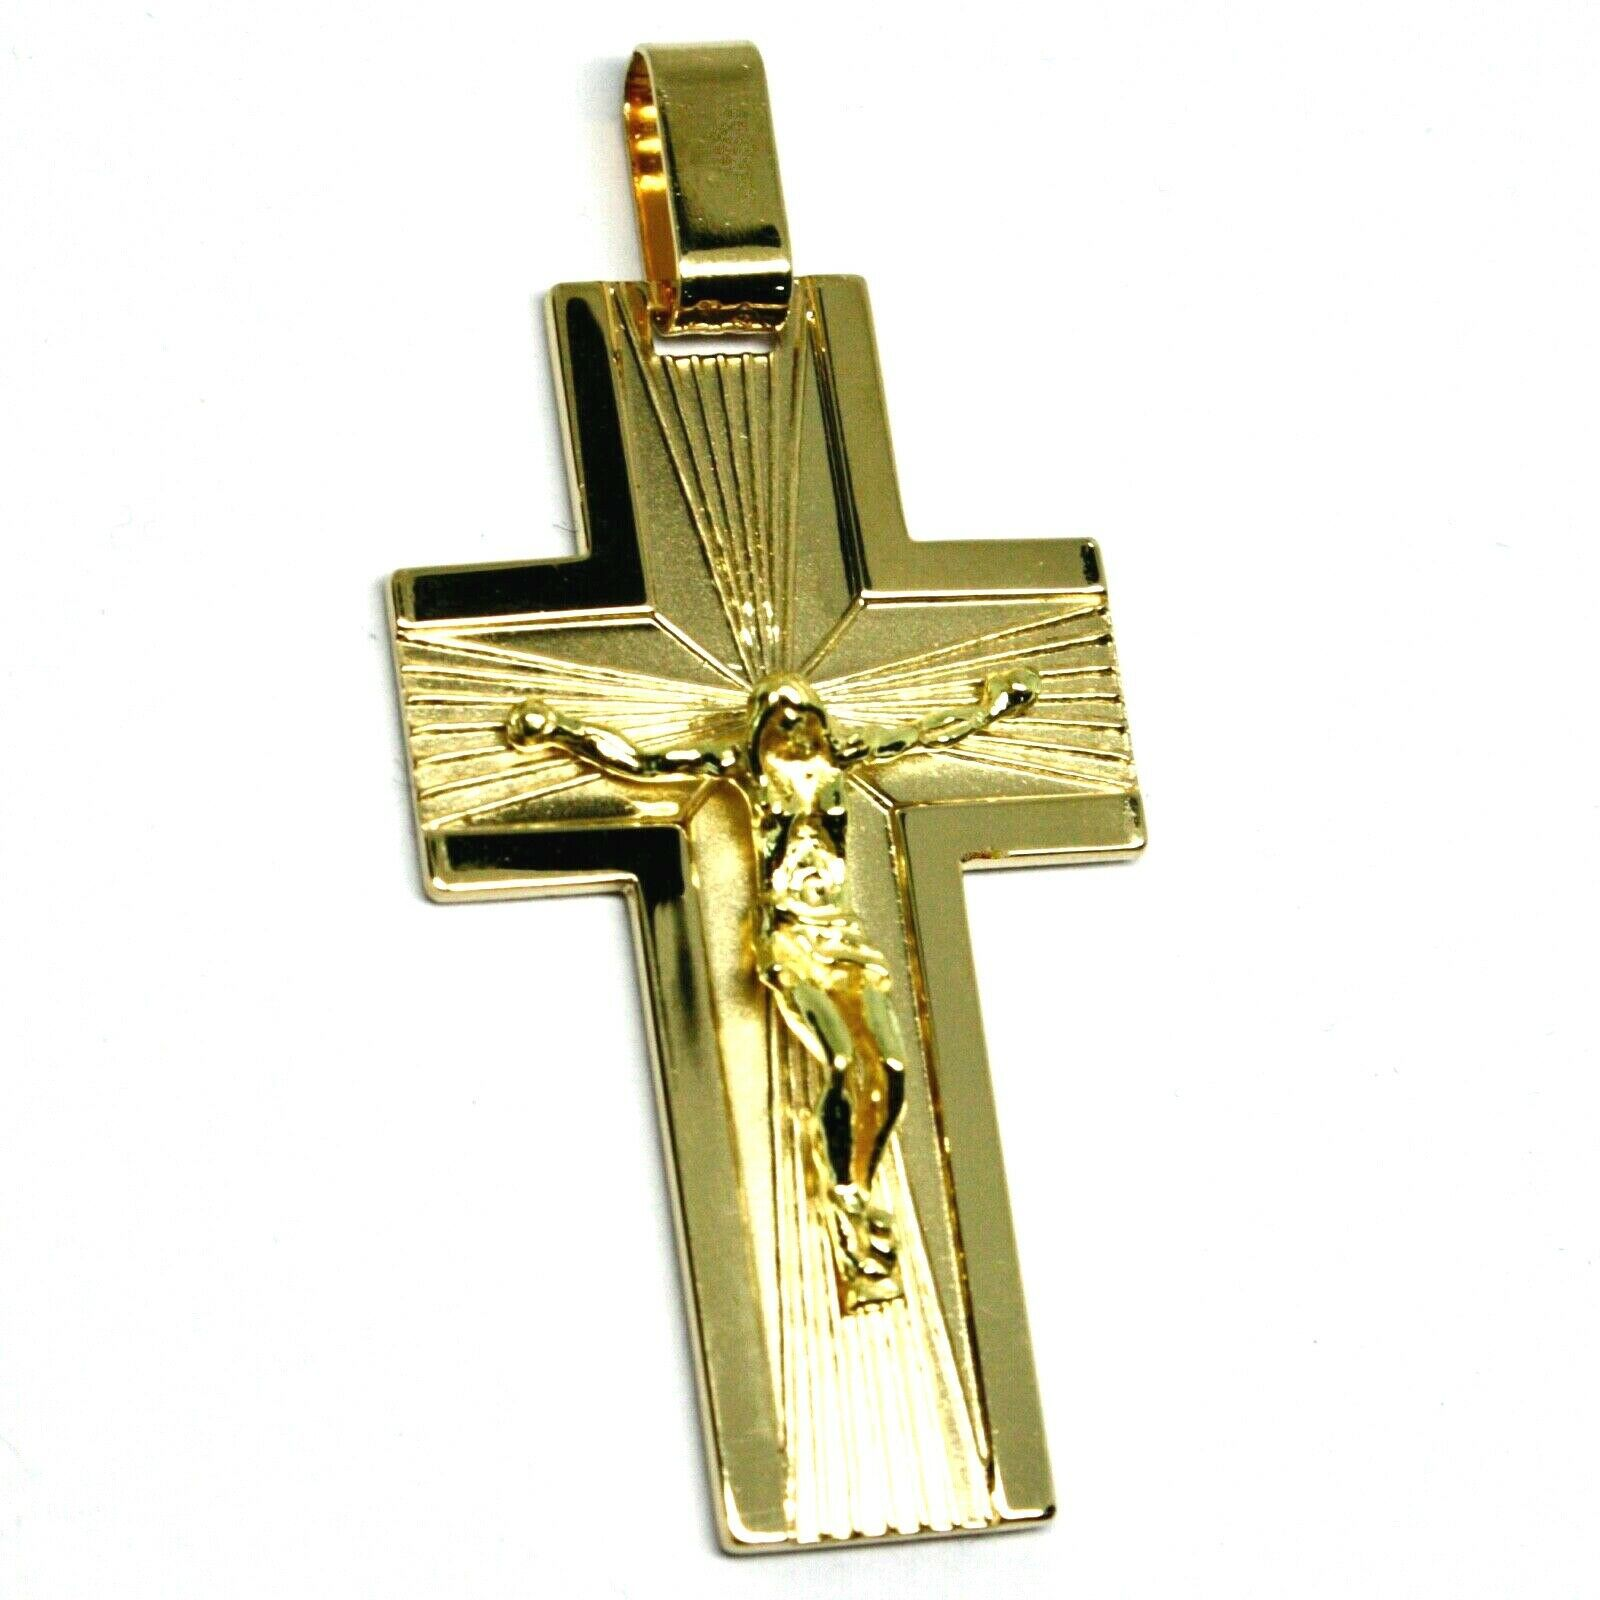 SOLID 18K YELLOW GOLD BIG 42mm FLAT CROSS, WORKED SATIN & SMOOTH WITH JESUS